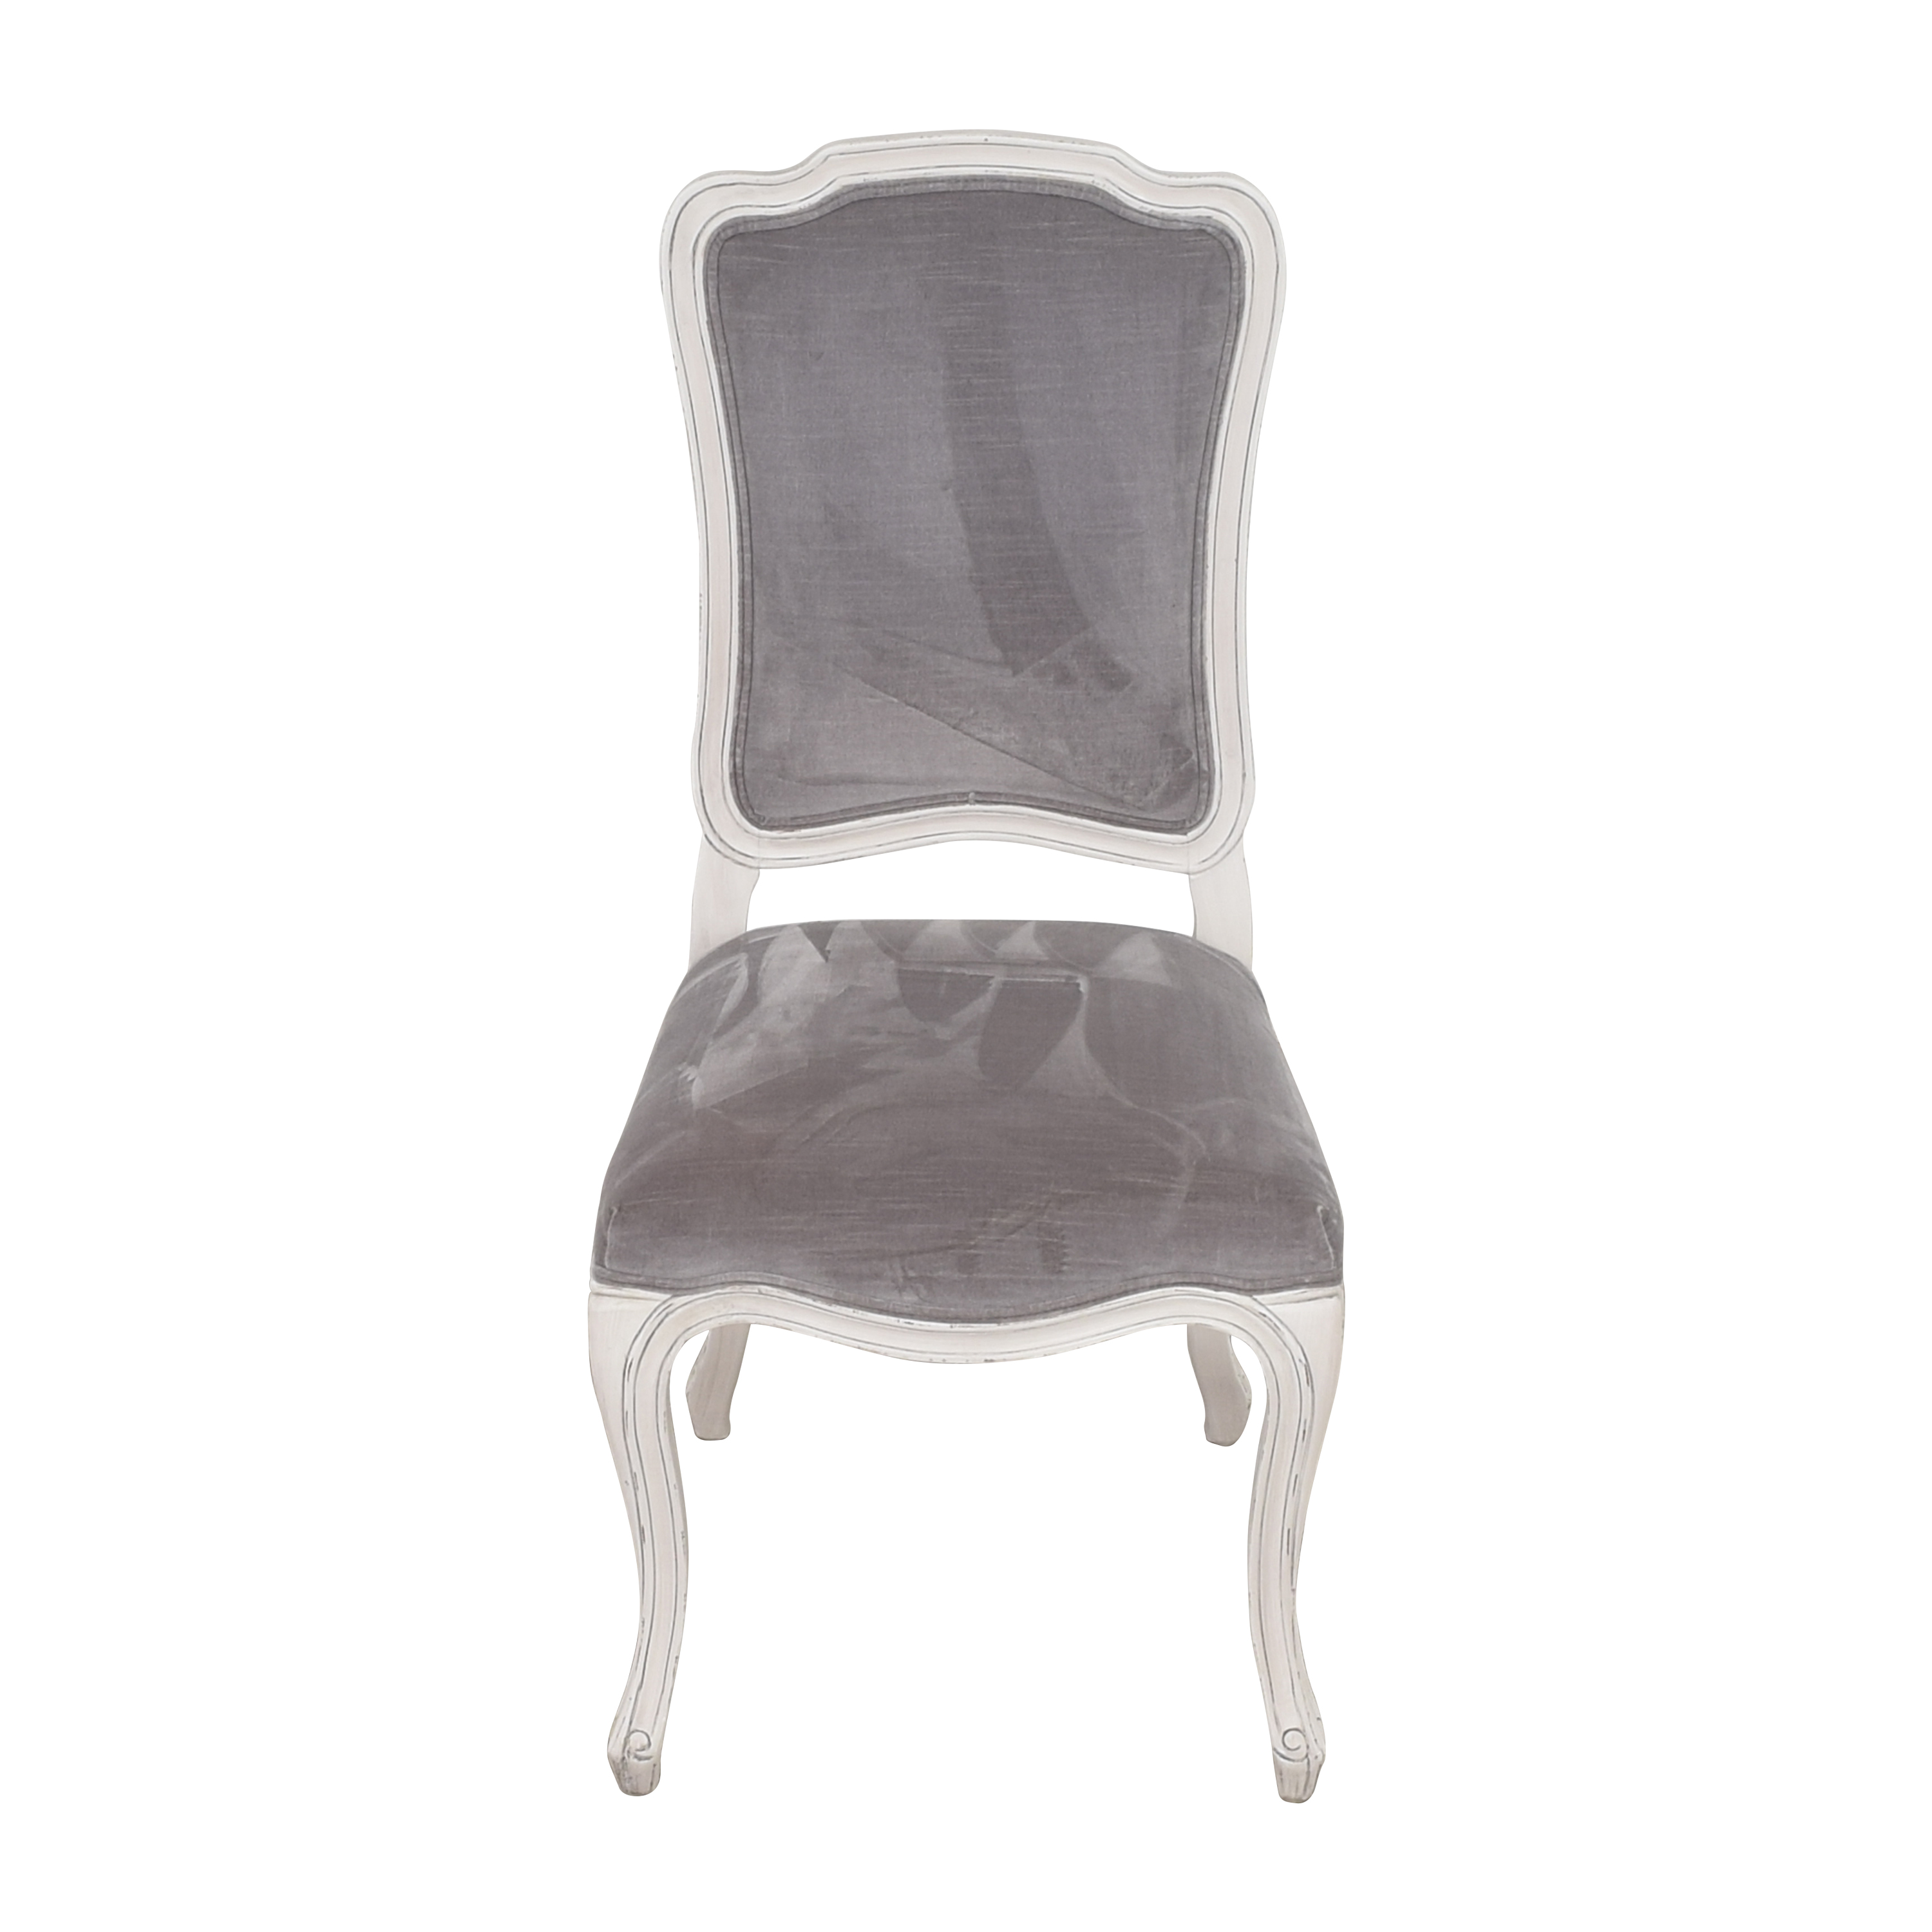 Restoration Hardware Restoration Hardware Sophie Chair ct